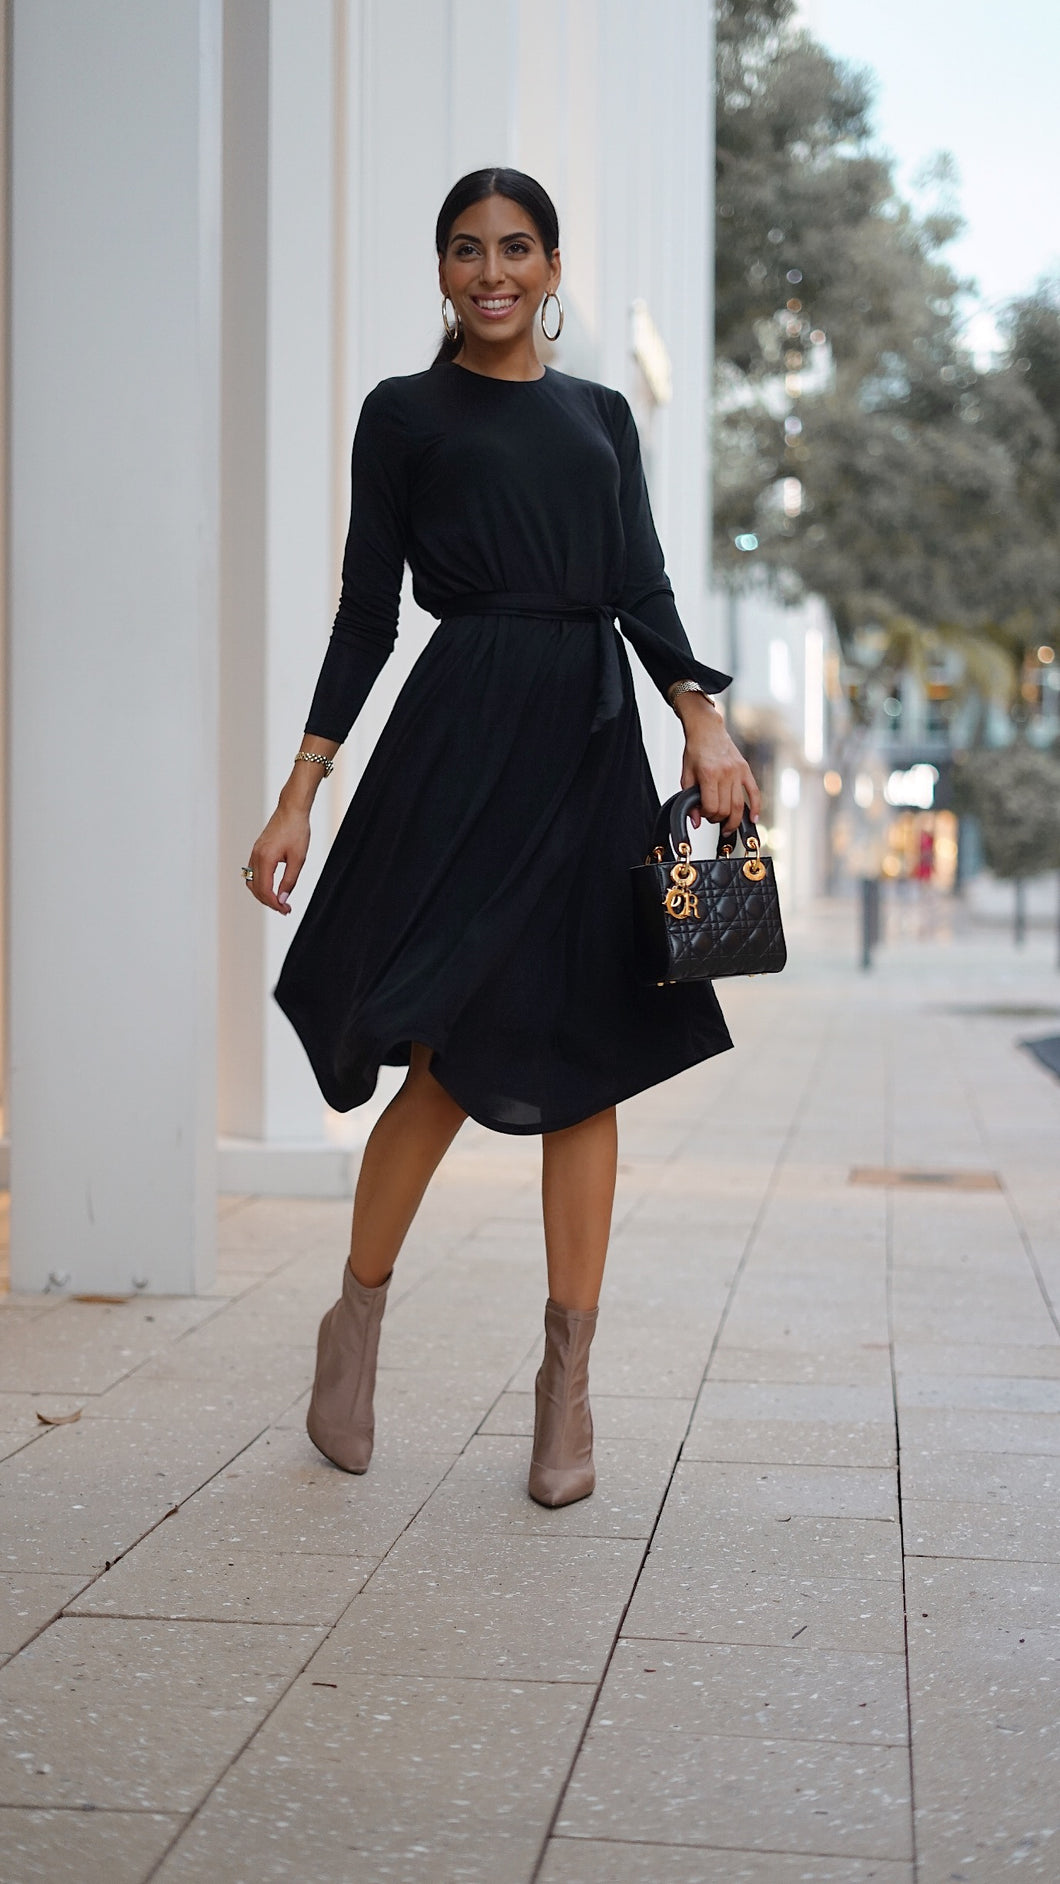 Black Flow Dress 2.0